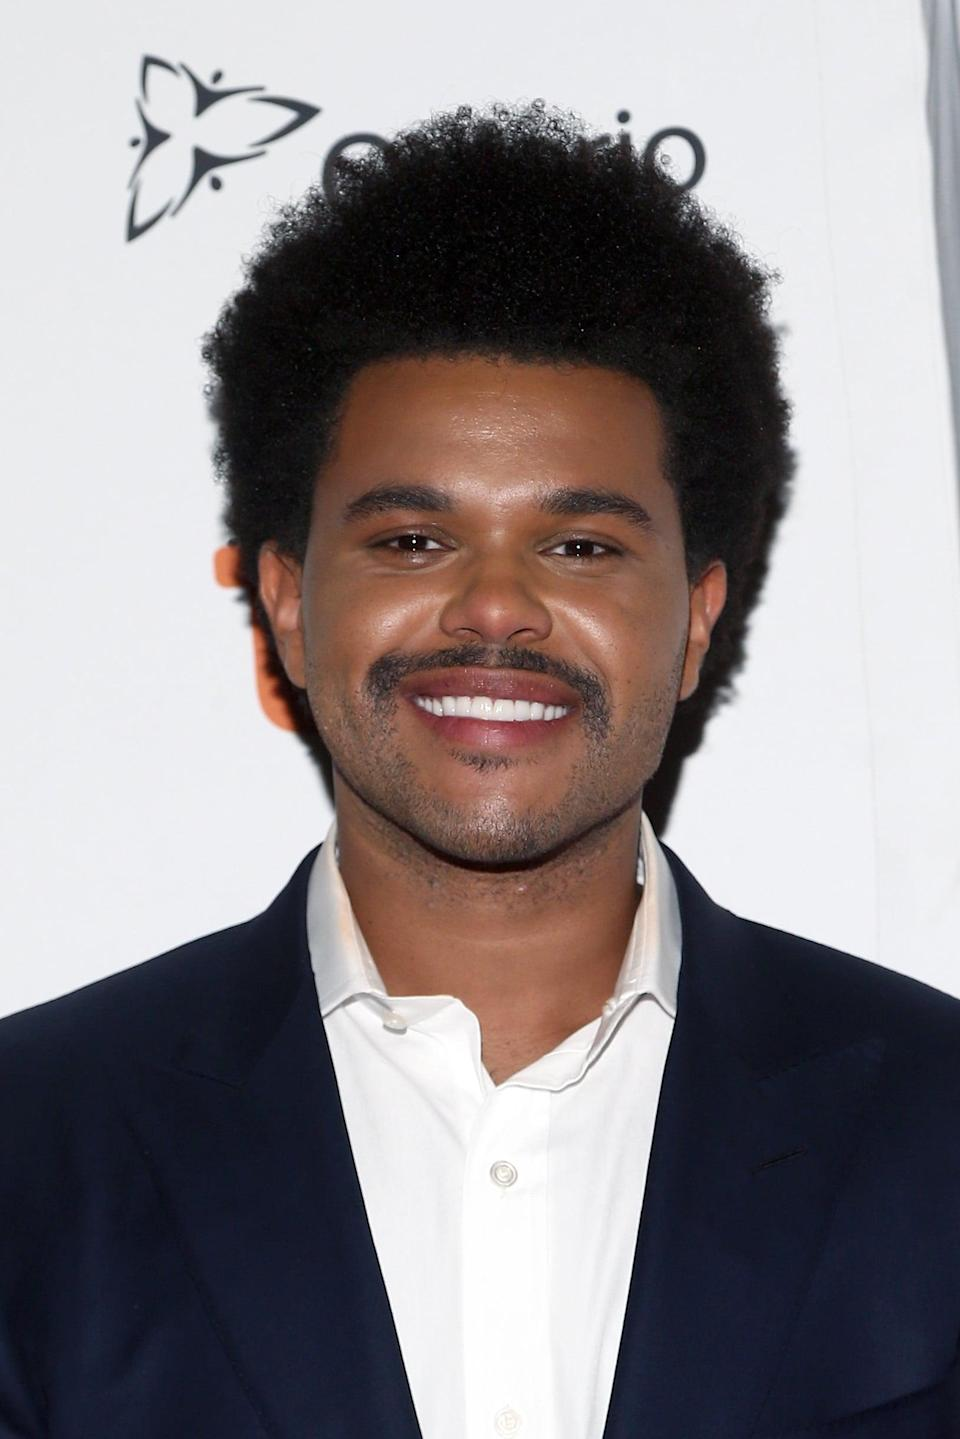 "<p>In 2019, he stepped out at a film festival wearing a <a href=""https://www.popsugar.com/beauty/the-weeknd-new-hair-toronto-international-film-festival-46599064"" class=""link rapid-noclick-resp"" rel=""nofollow noopener"" target=""_blank"" data-ylk=""slk:slightly longer, more rounded afro"">slightly longer, more rounded afro</a> and a horseshoe mustache.</p>"